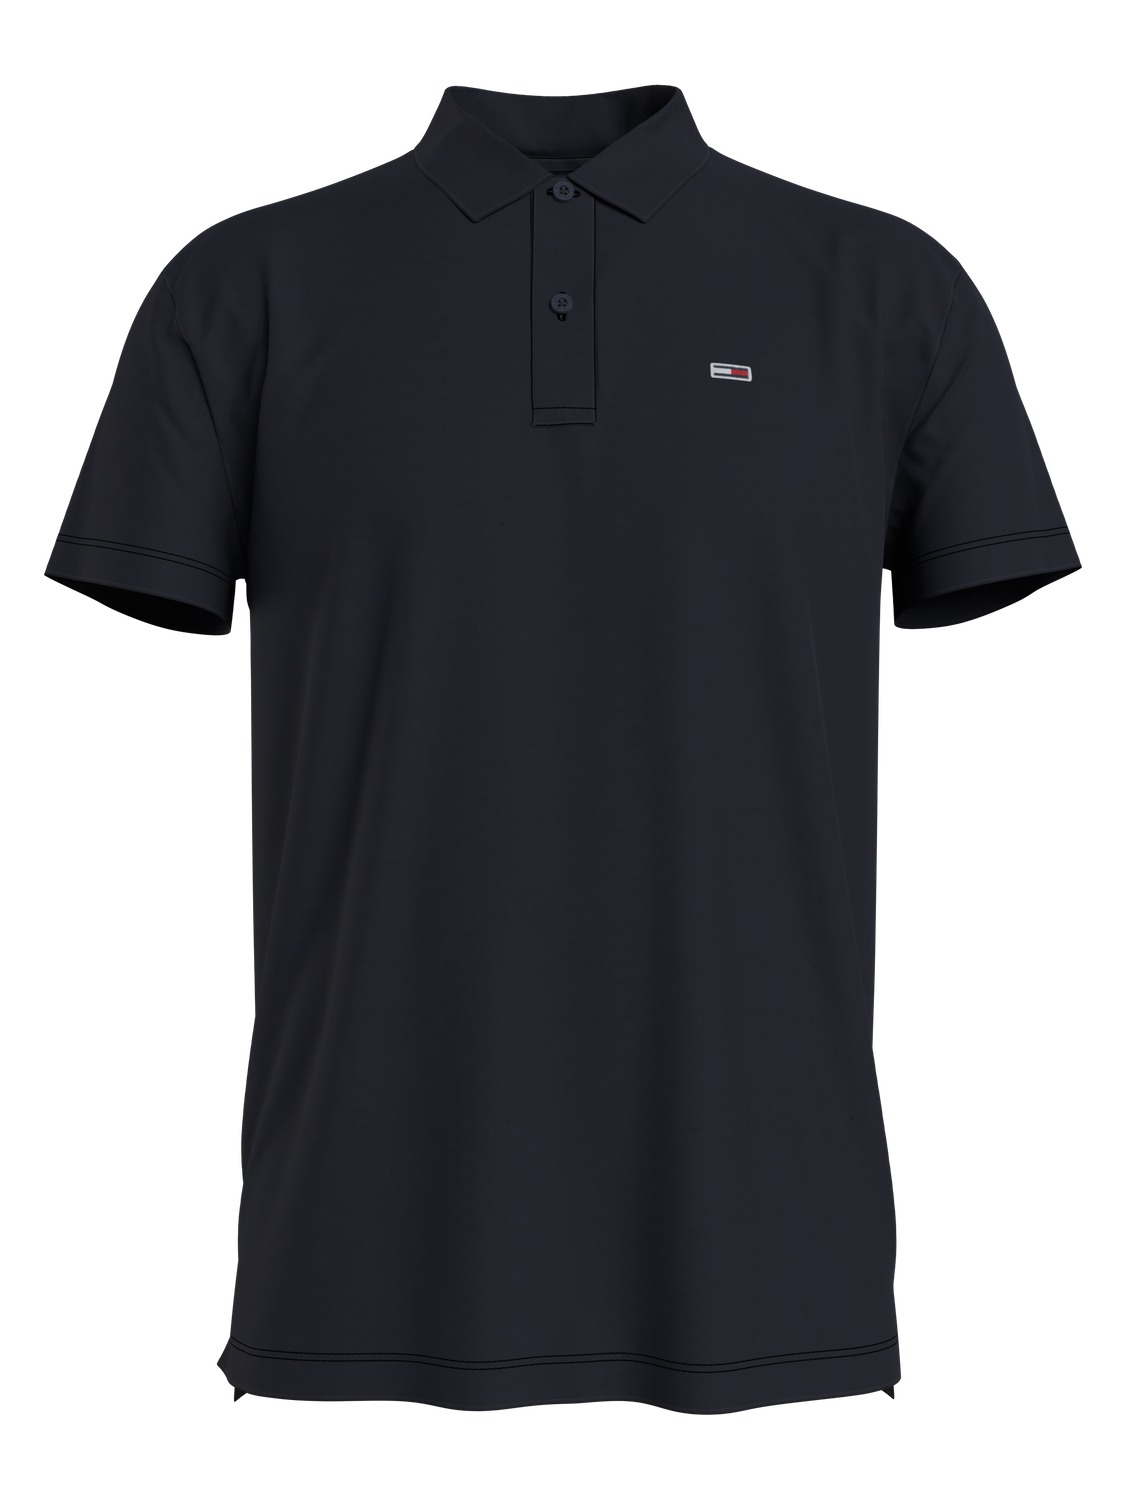 TJM - Jersey polo black | Gate36 Hobro